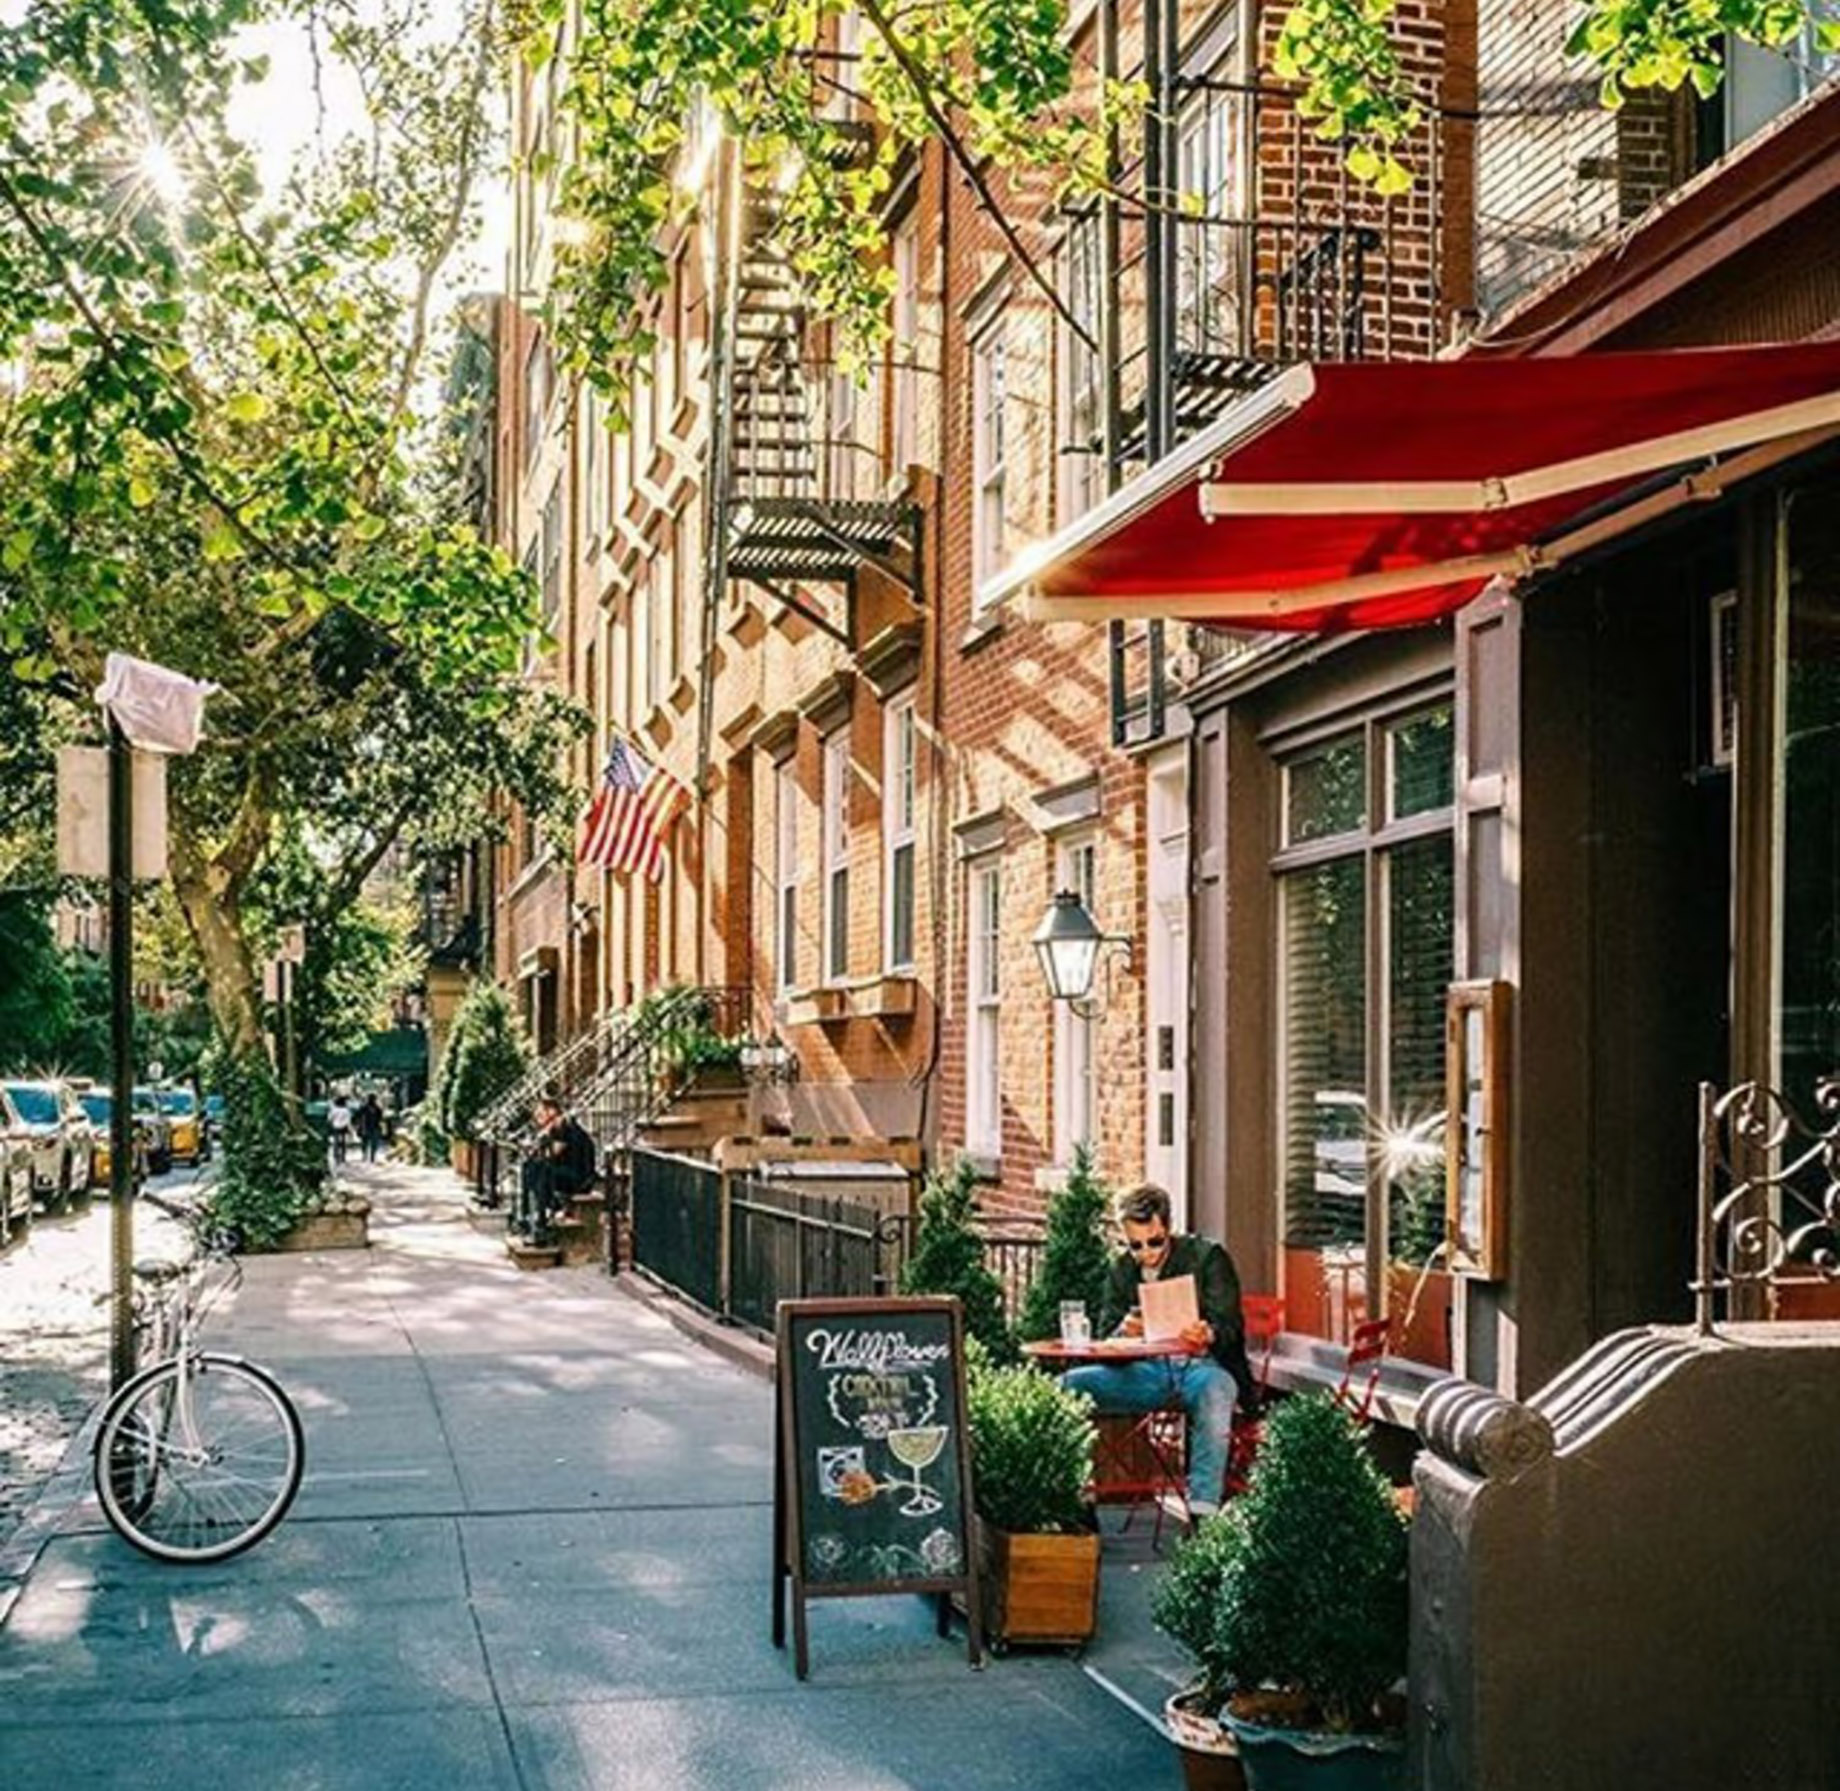 Classic Architecture – New York City Luxury Real Estate – Why Living in the West Village is a Must